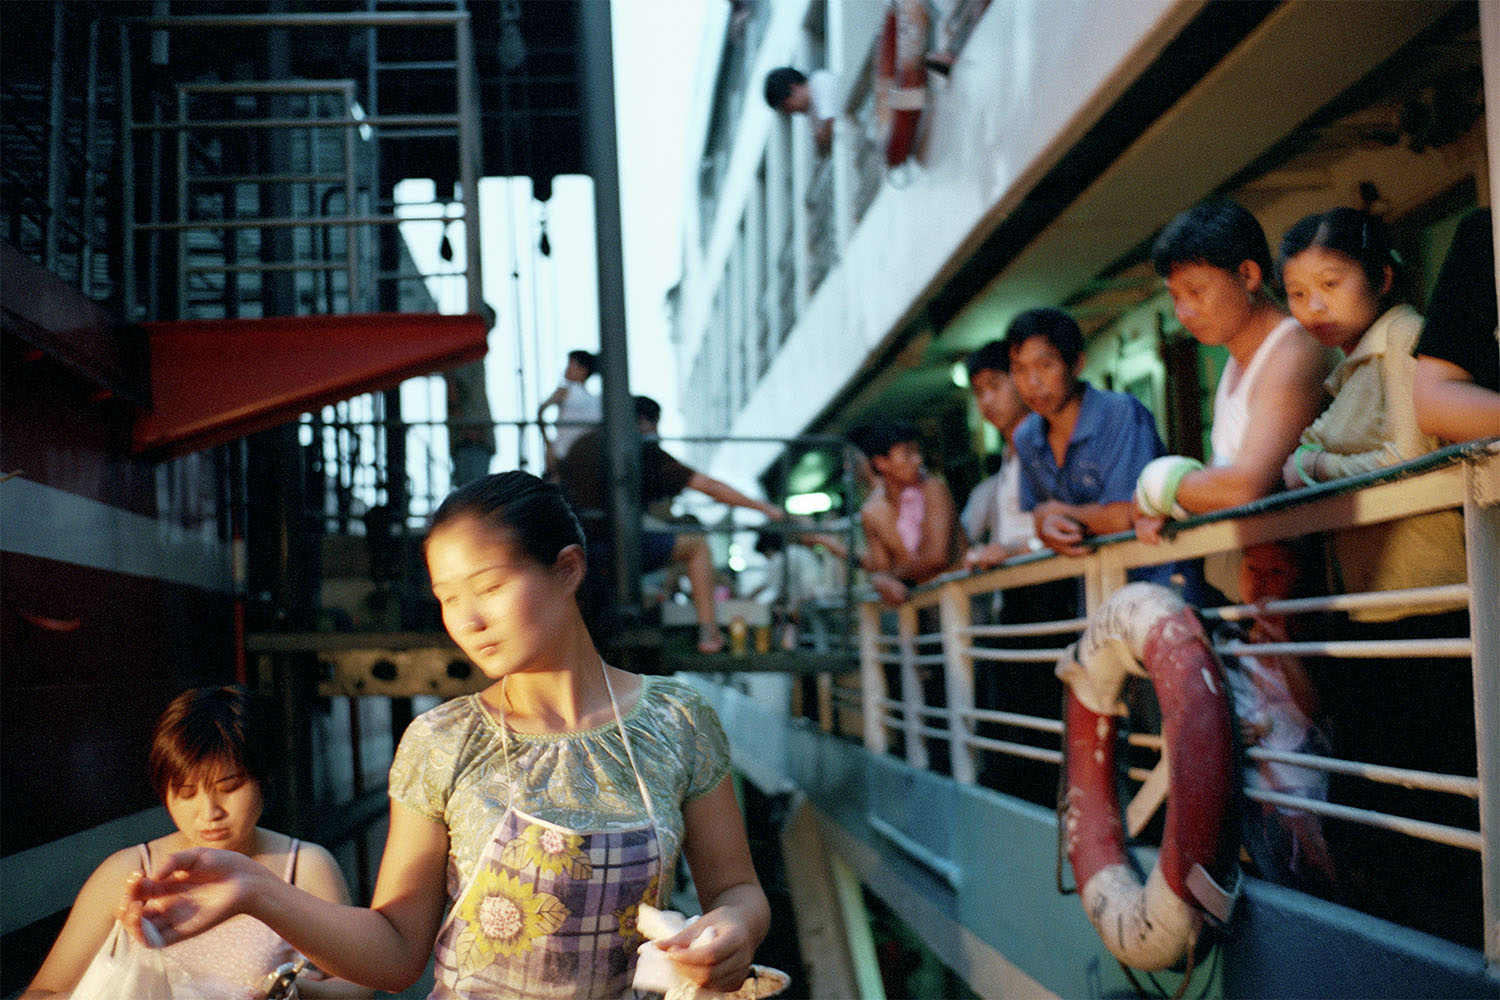 A street vendor selling food to passengers on a boat. Yichang, China. 2001.